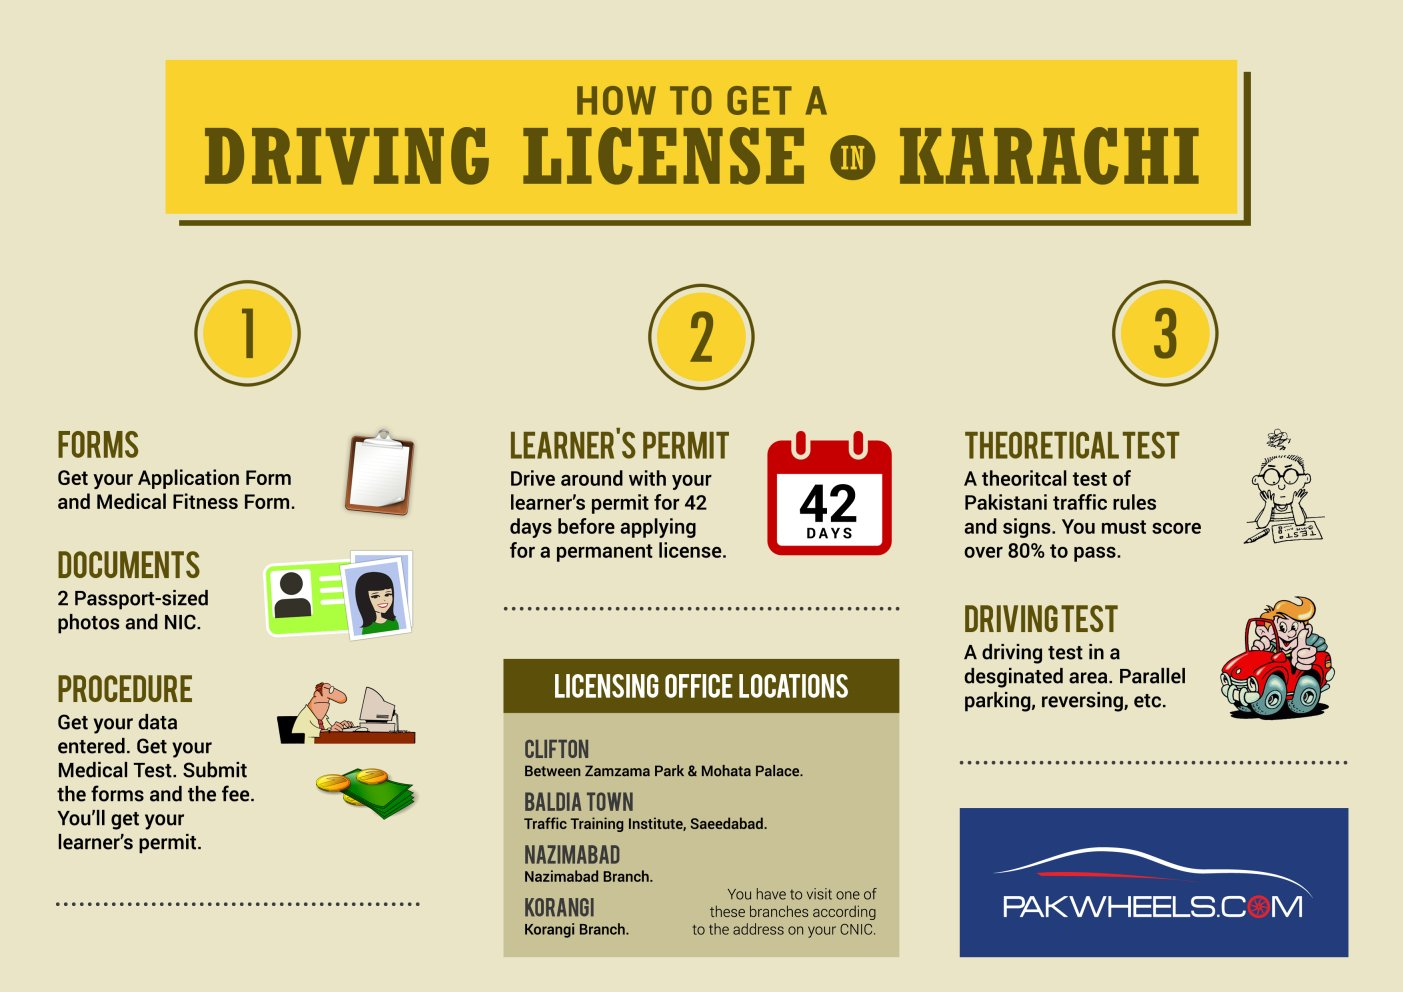 How to Get a License in Karachi